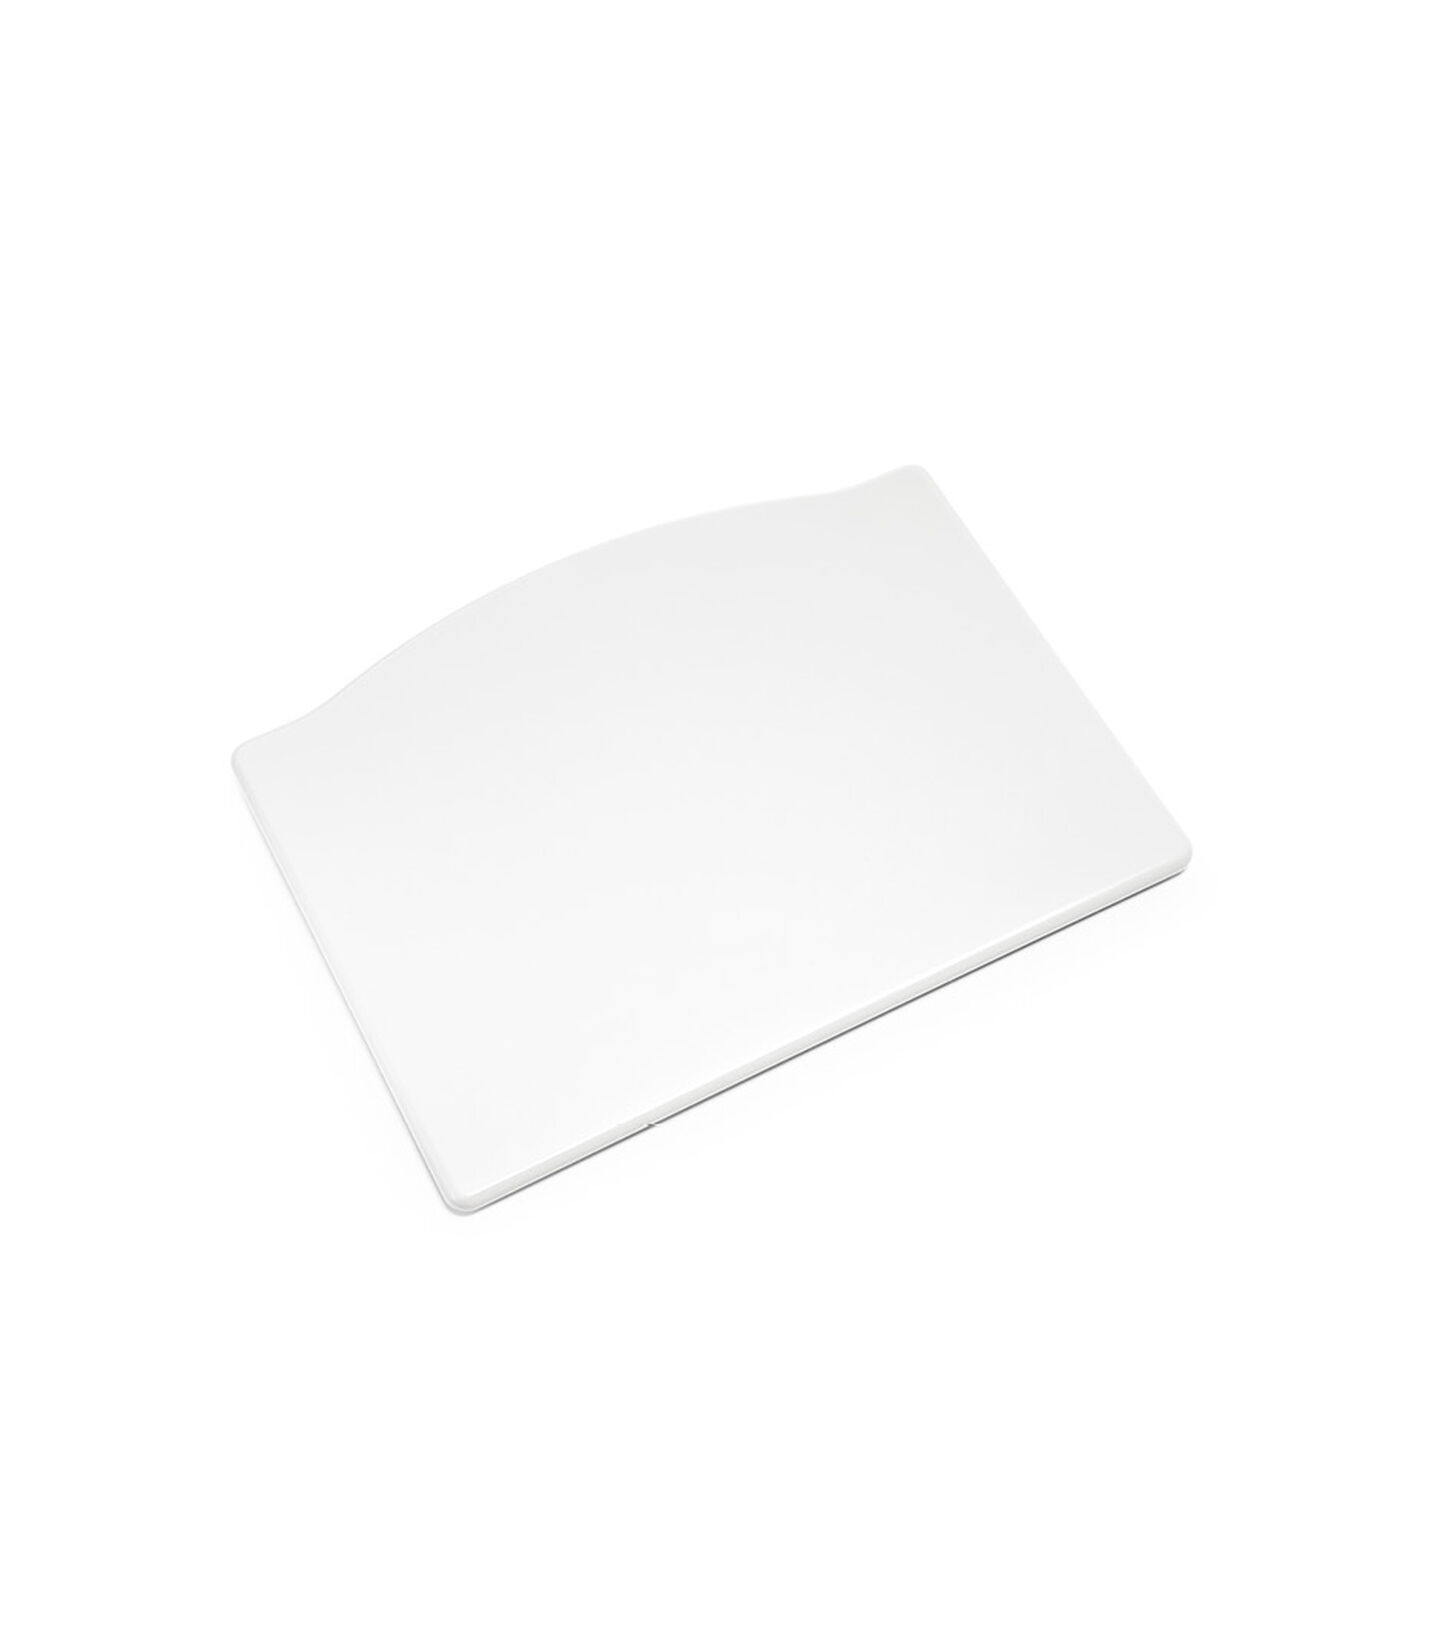 108907 Tripp Trapp Foot plate White (Spare part). view 2